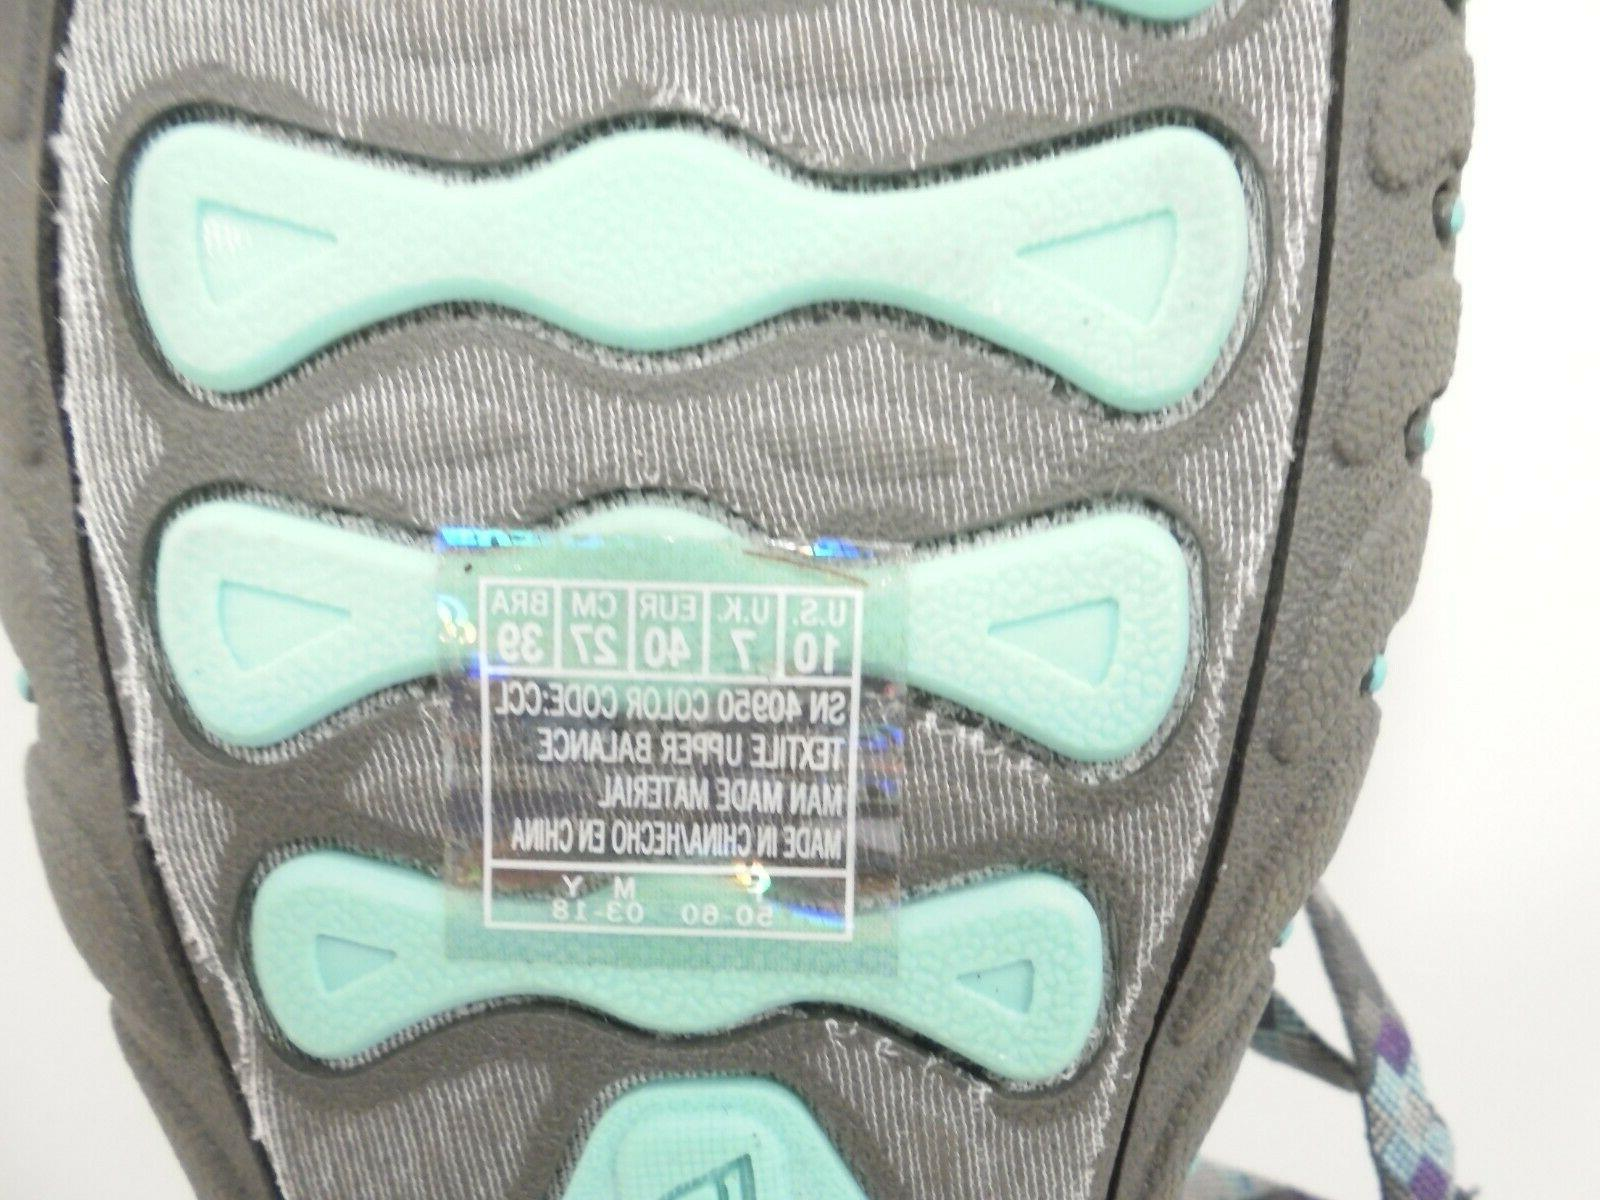 NEW! Womens SKECHERS OUTDOOR LIFESTYLE Ring Toe - Shoe US 10 M